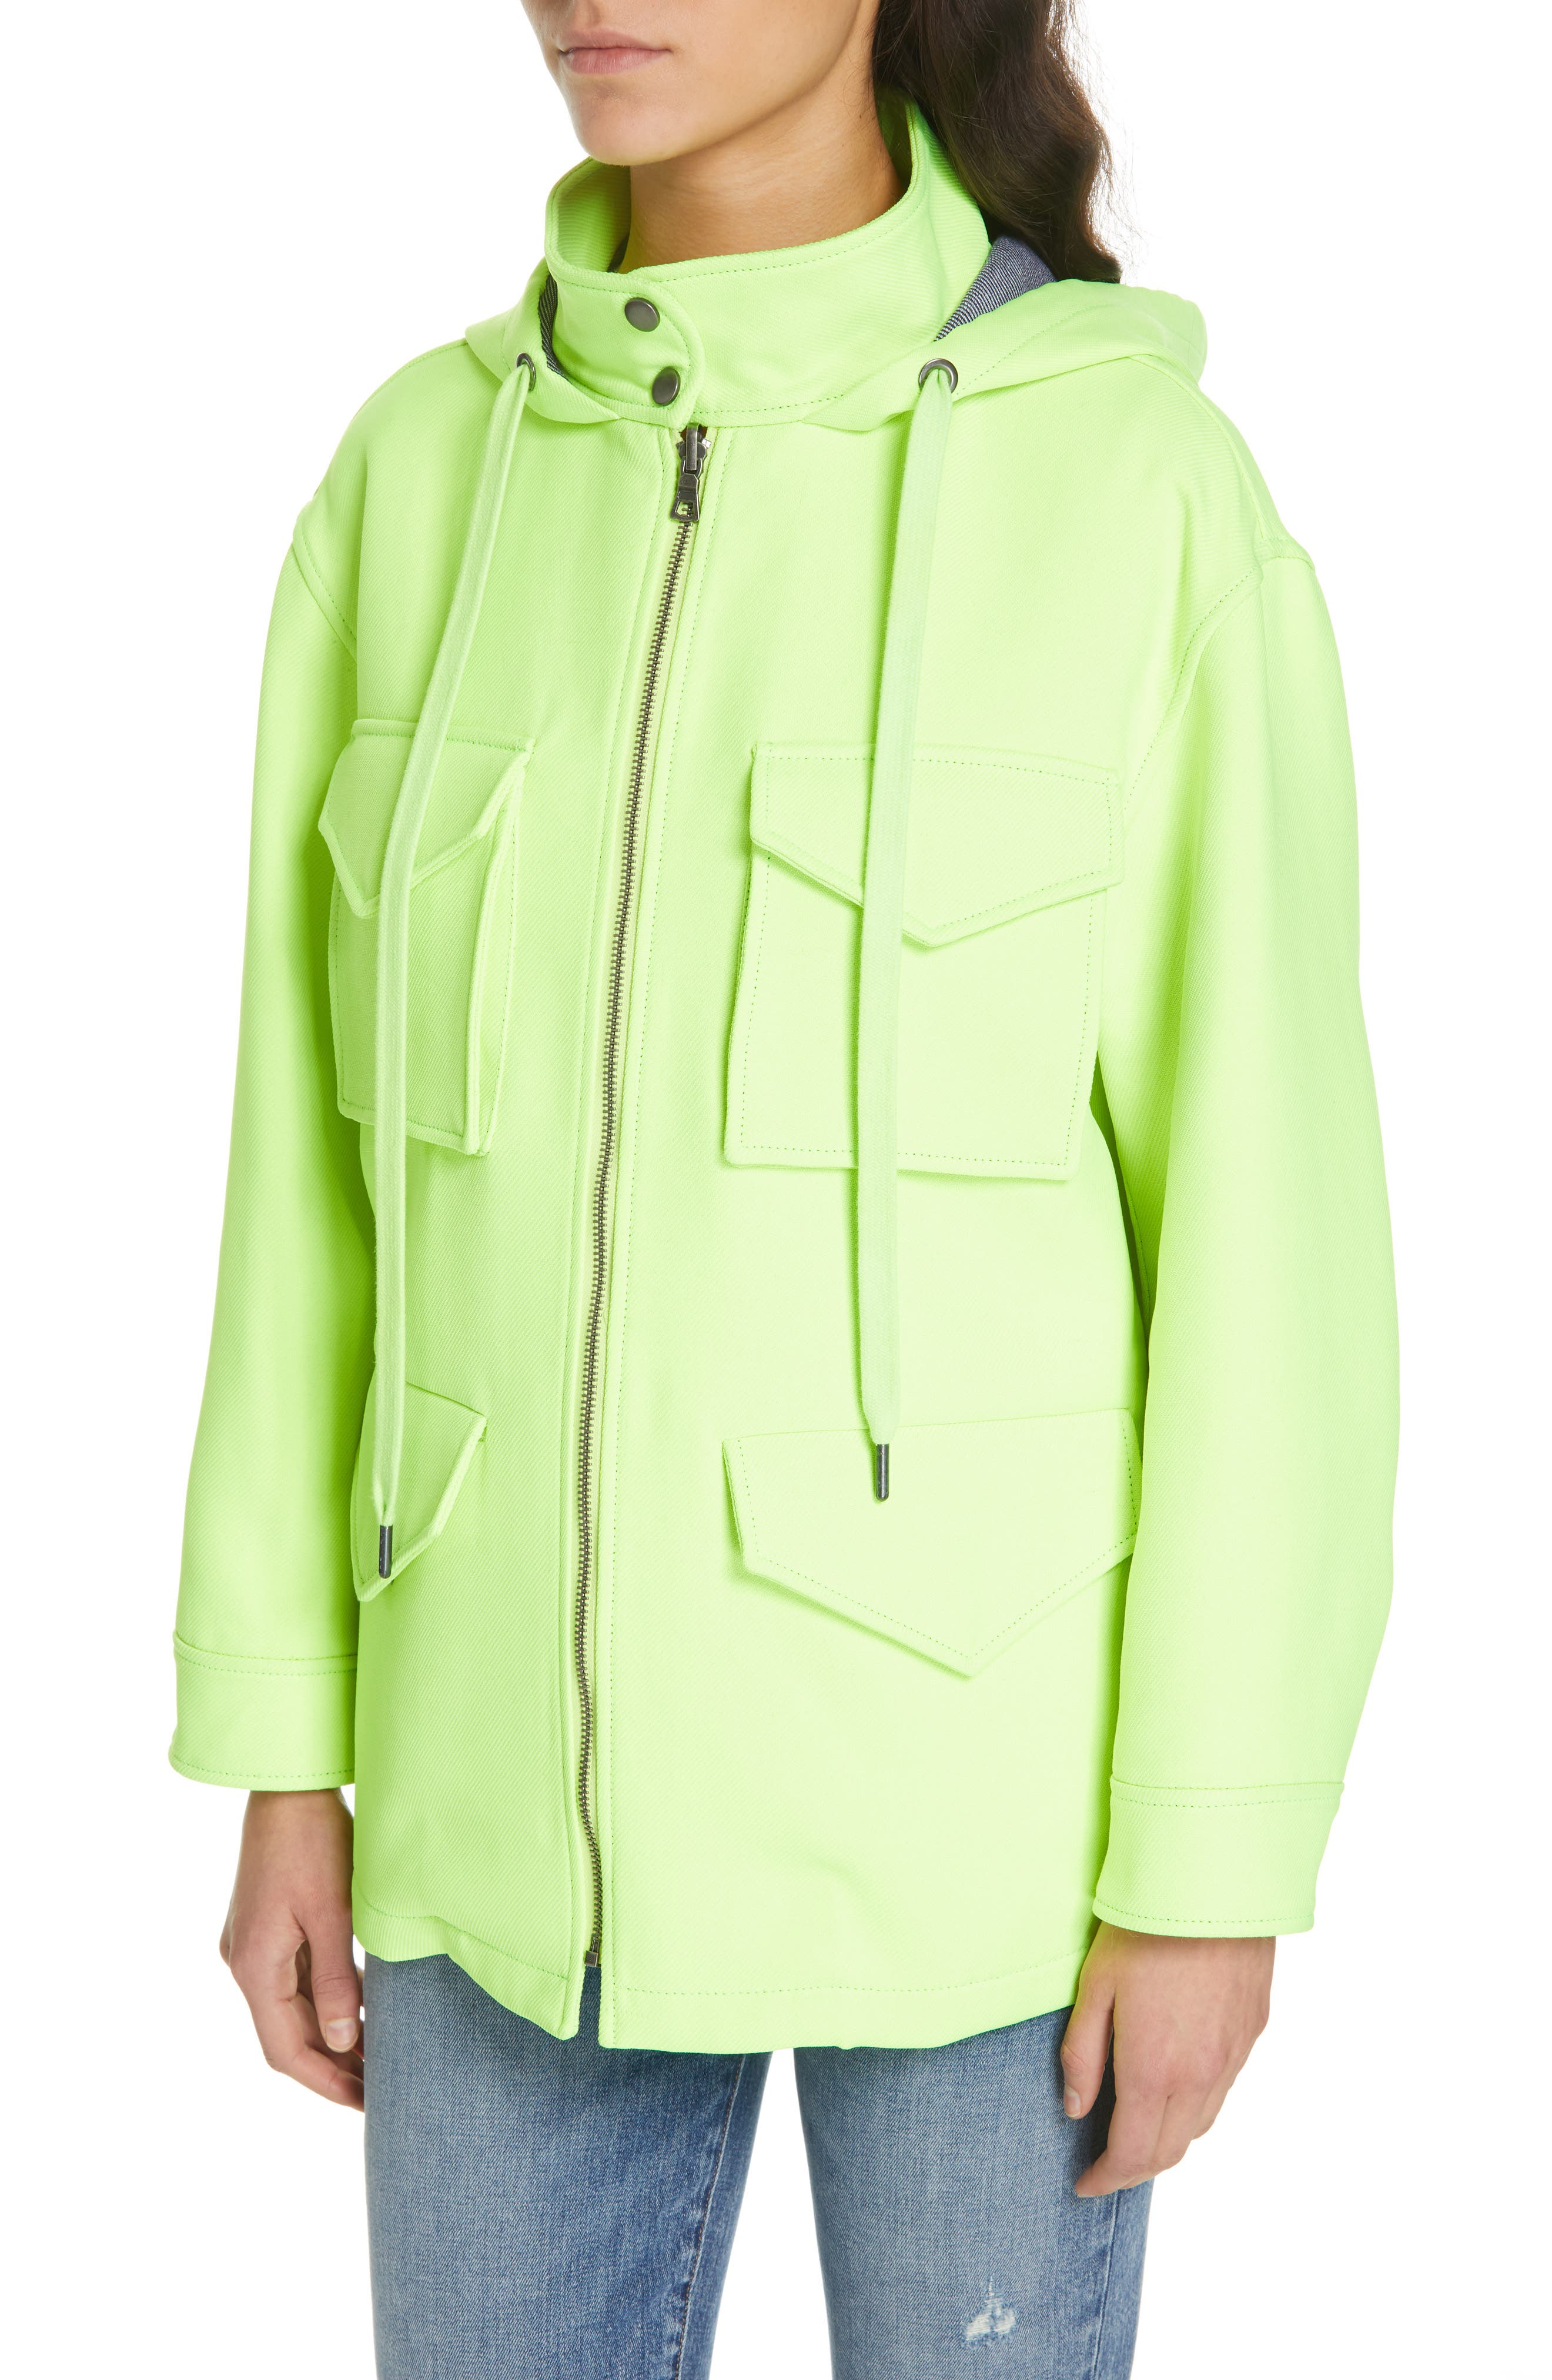 ALICE + OLIVIA,                             Russo Hooded Jacket,                             Alternate thumbnail 4, color,                             NEON YELLOW